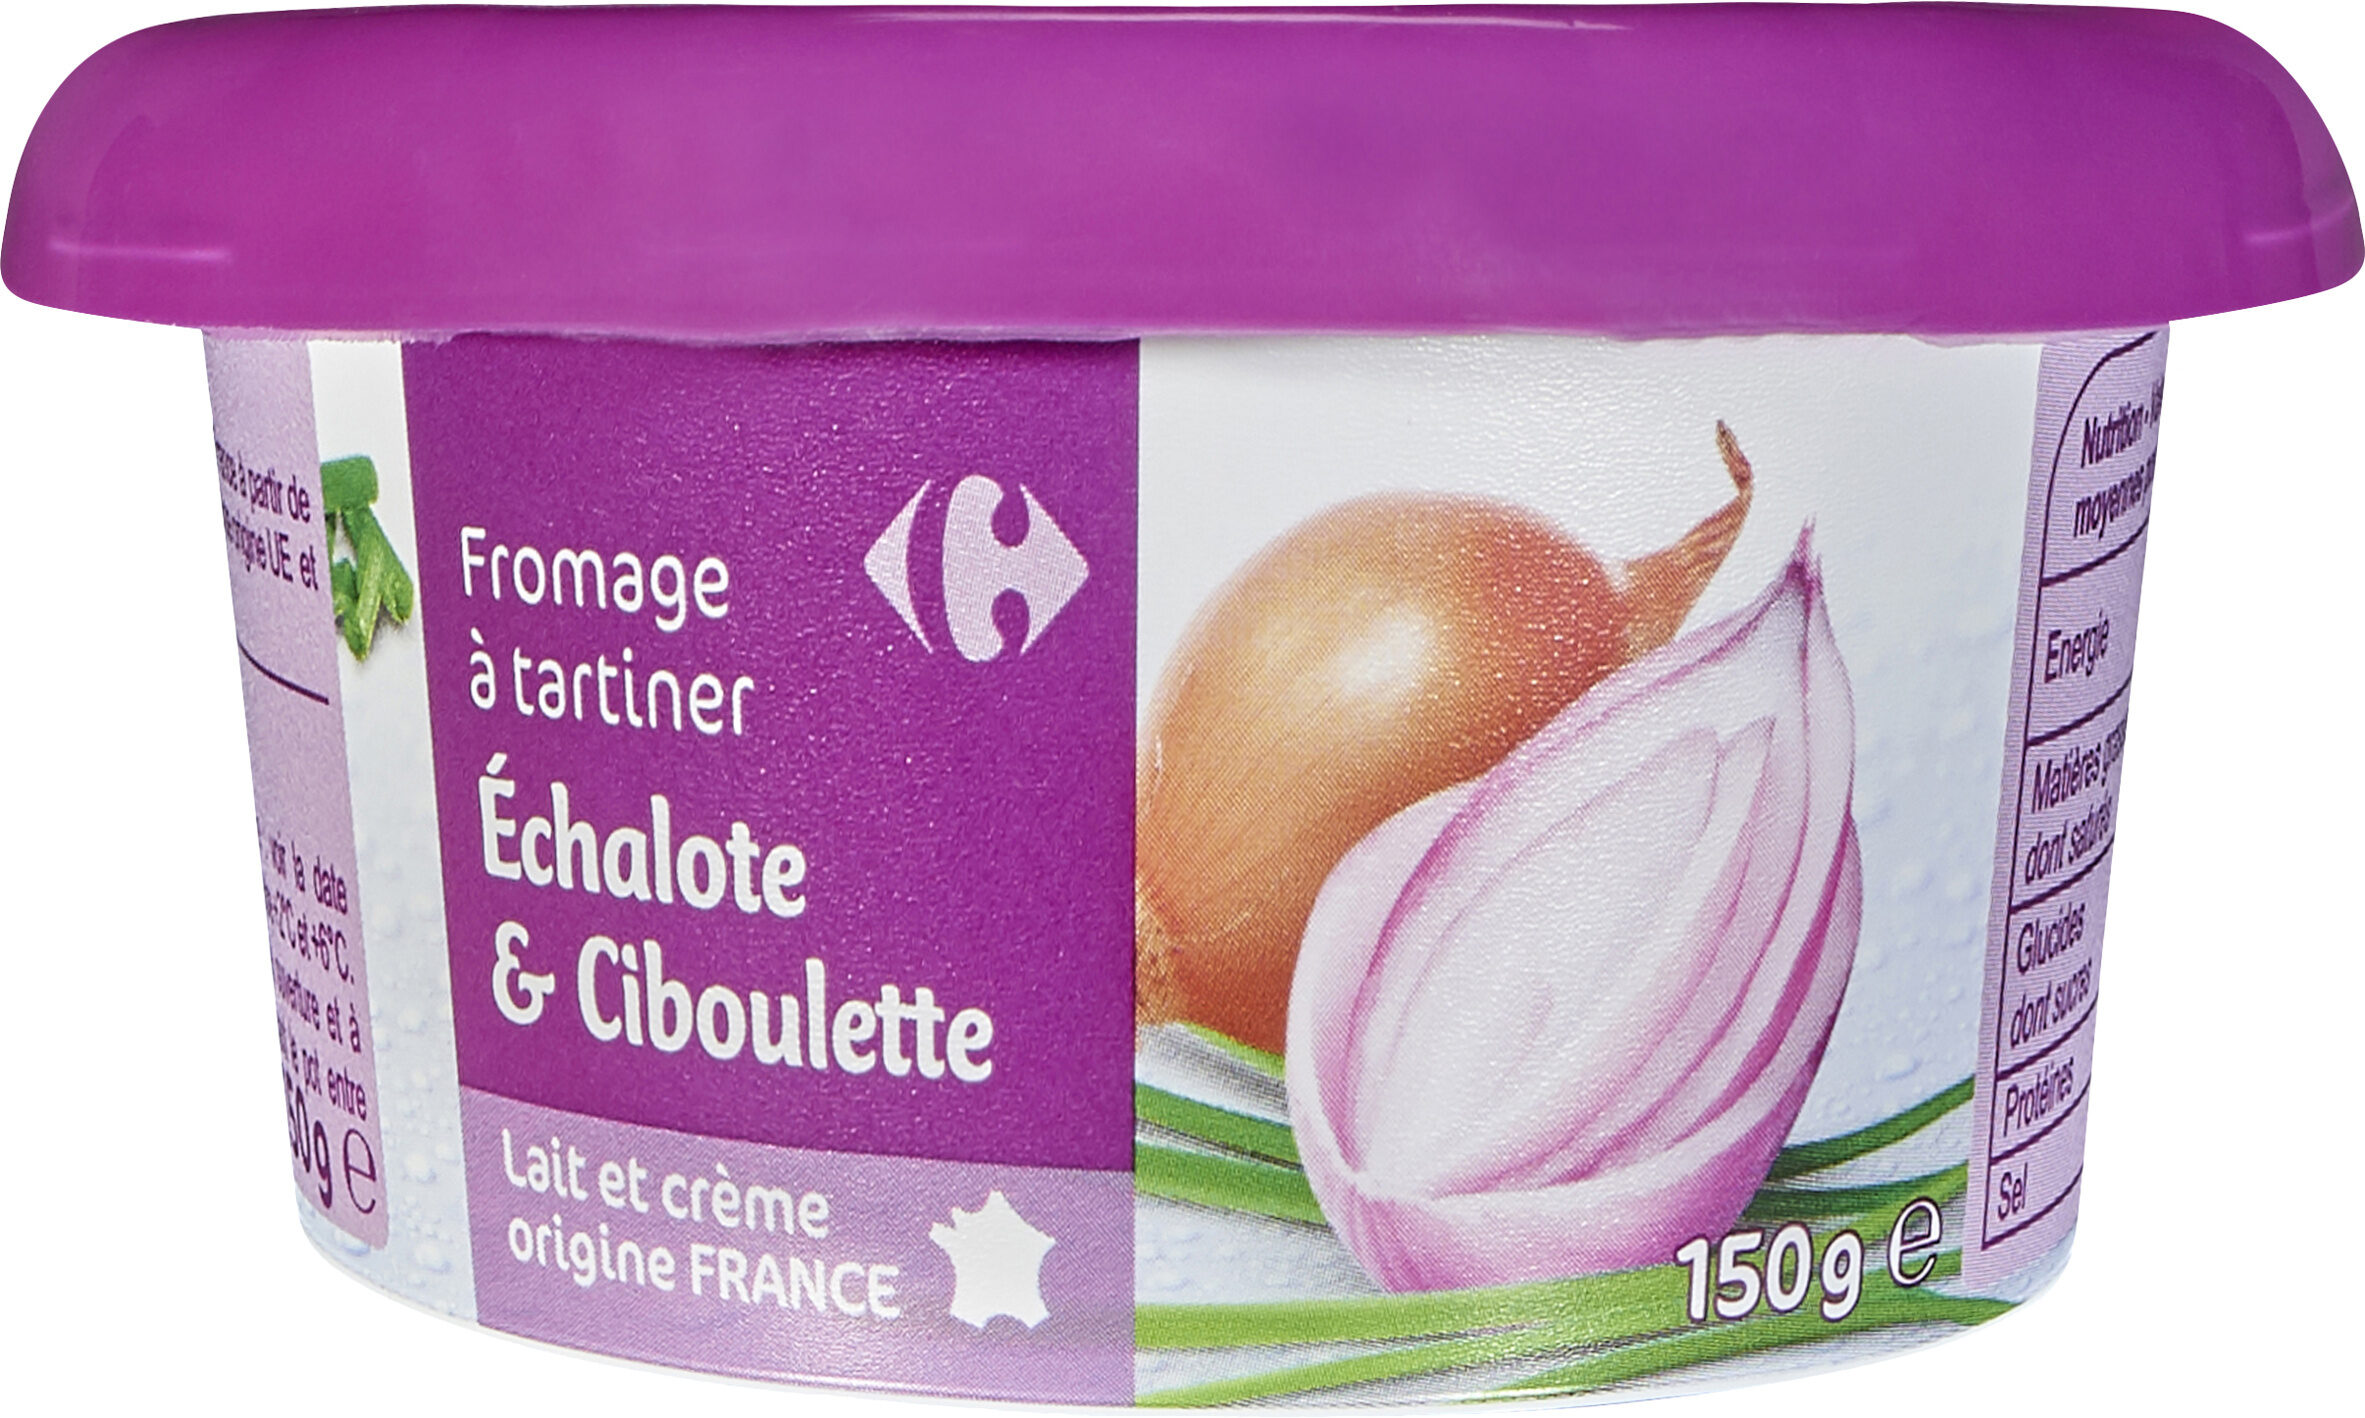 Fromage à tartiner Echalote & ciboulette - Product - fr